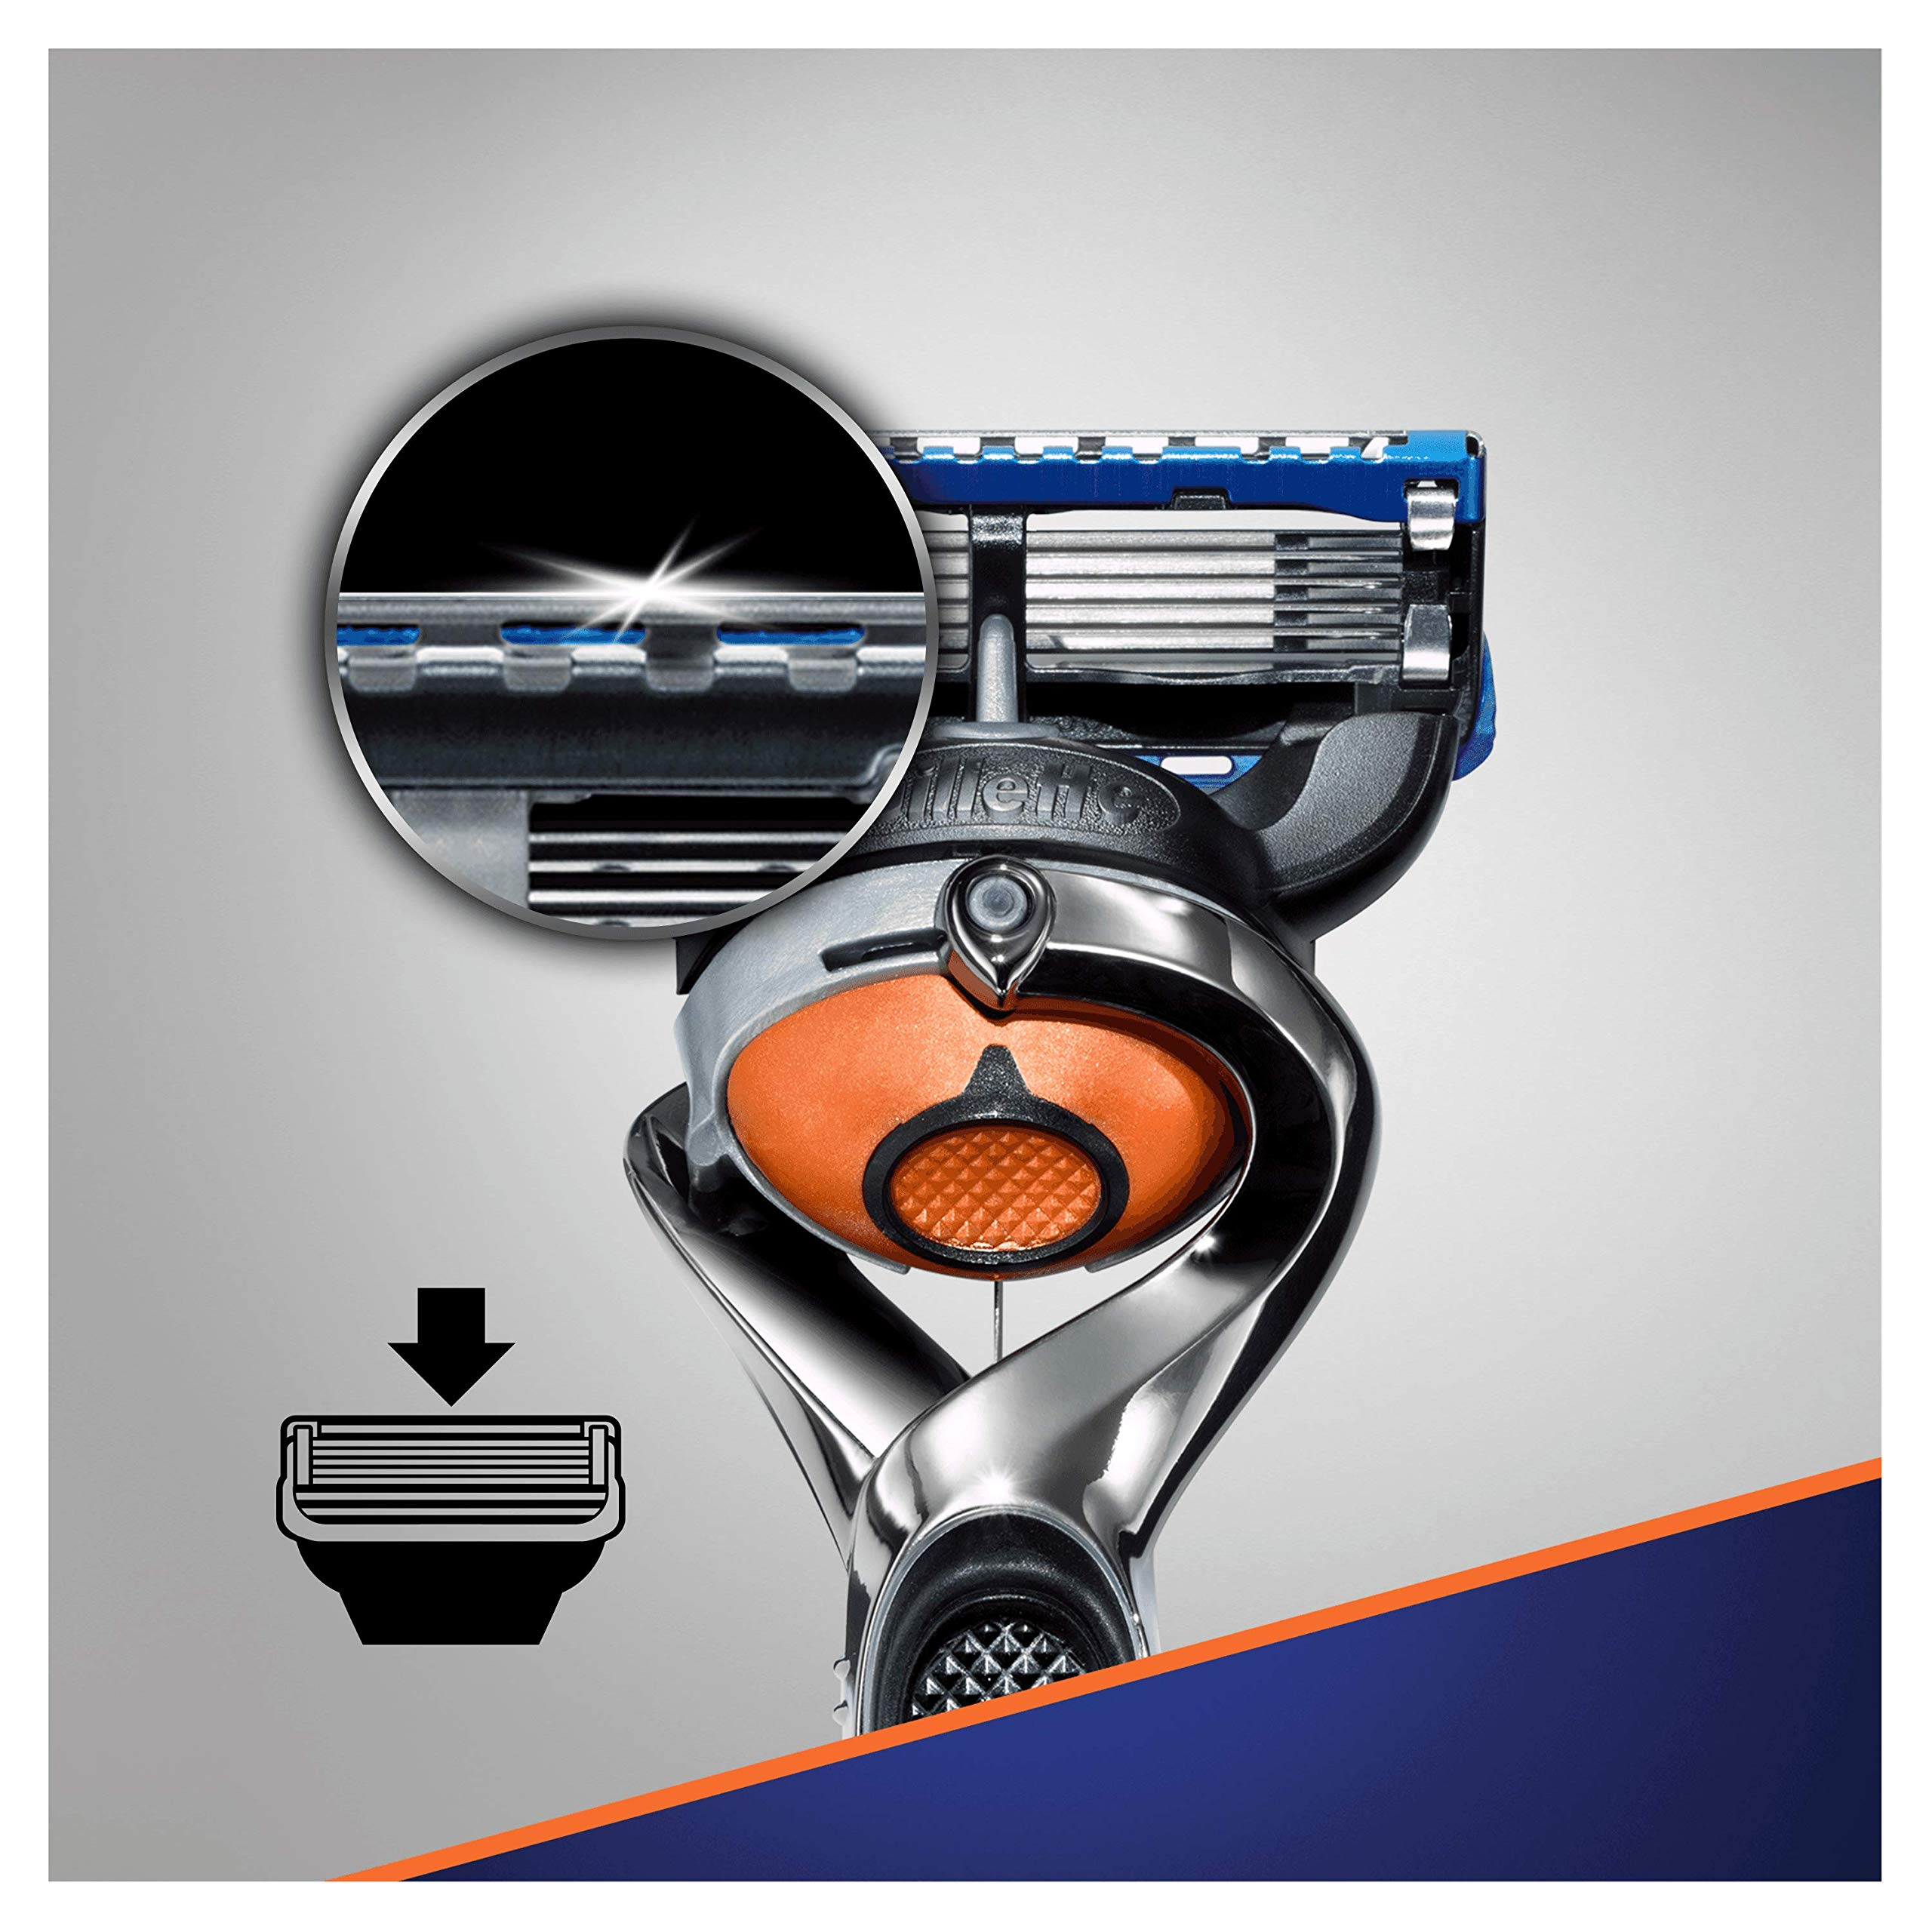 Gillette Fusion Manual Razor with FlexBall Technology